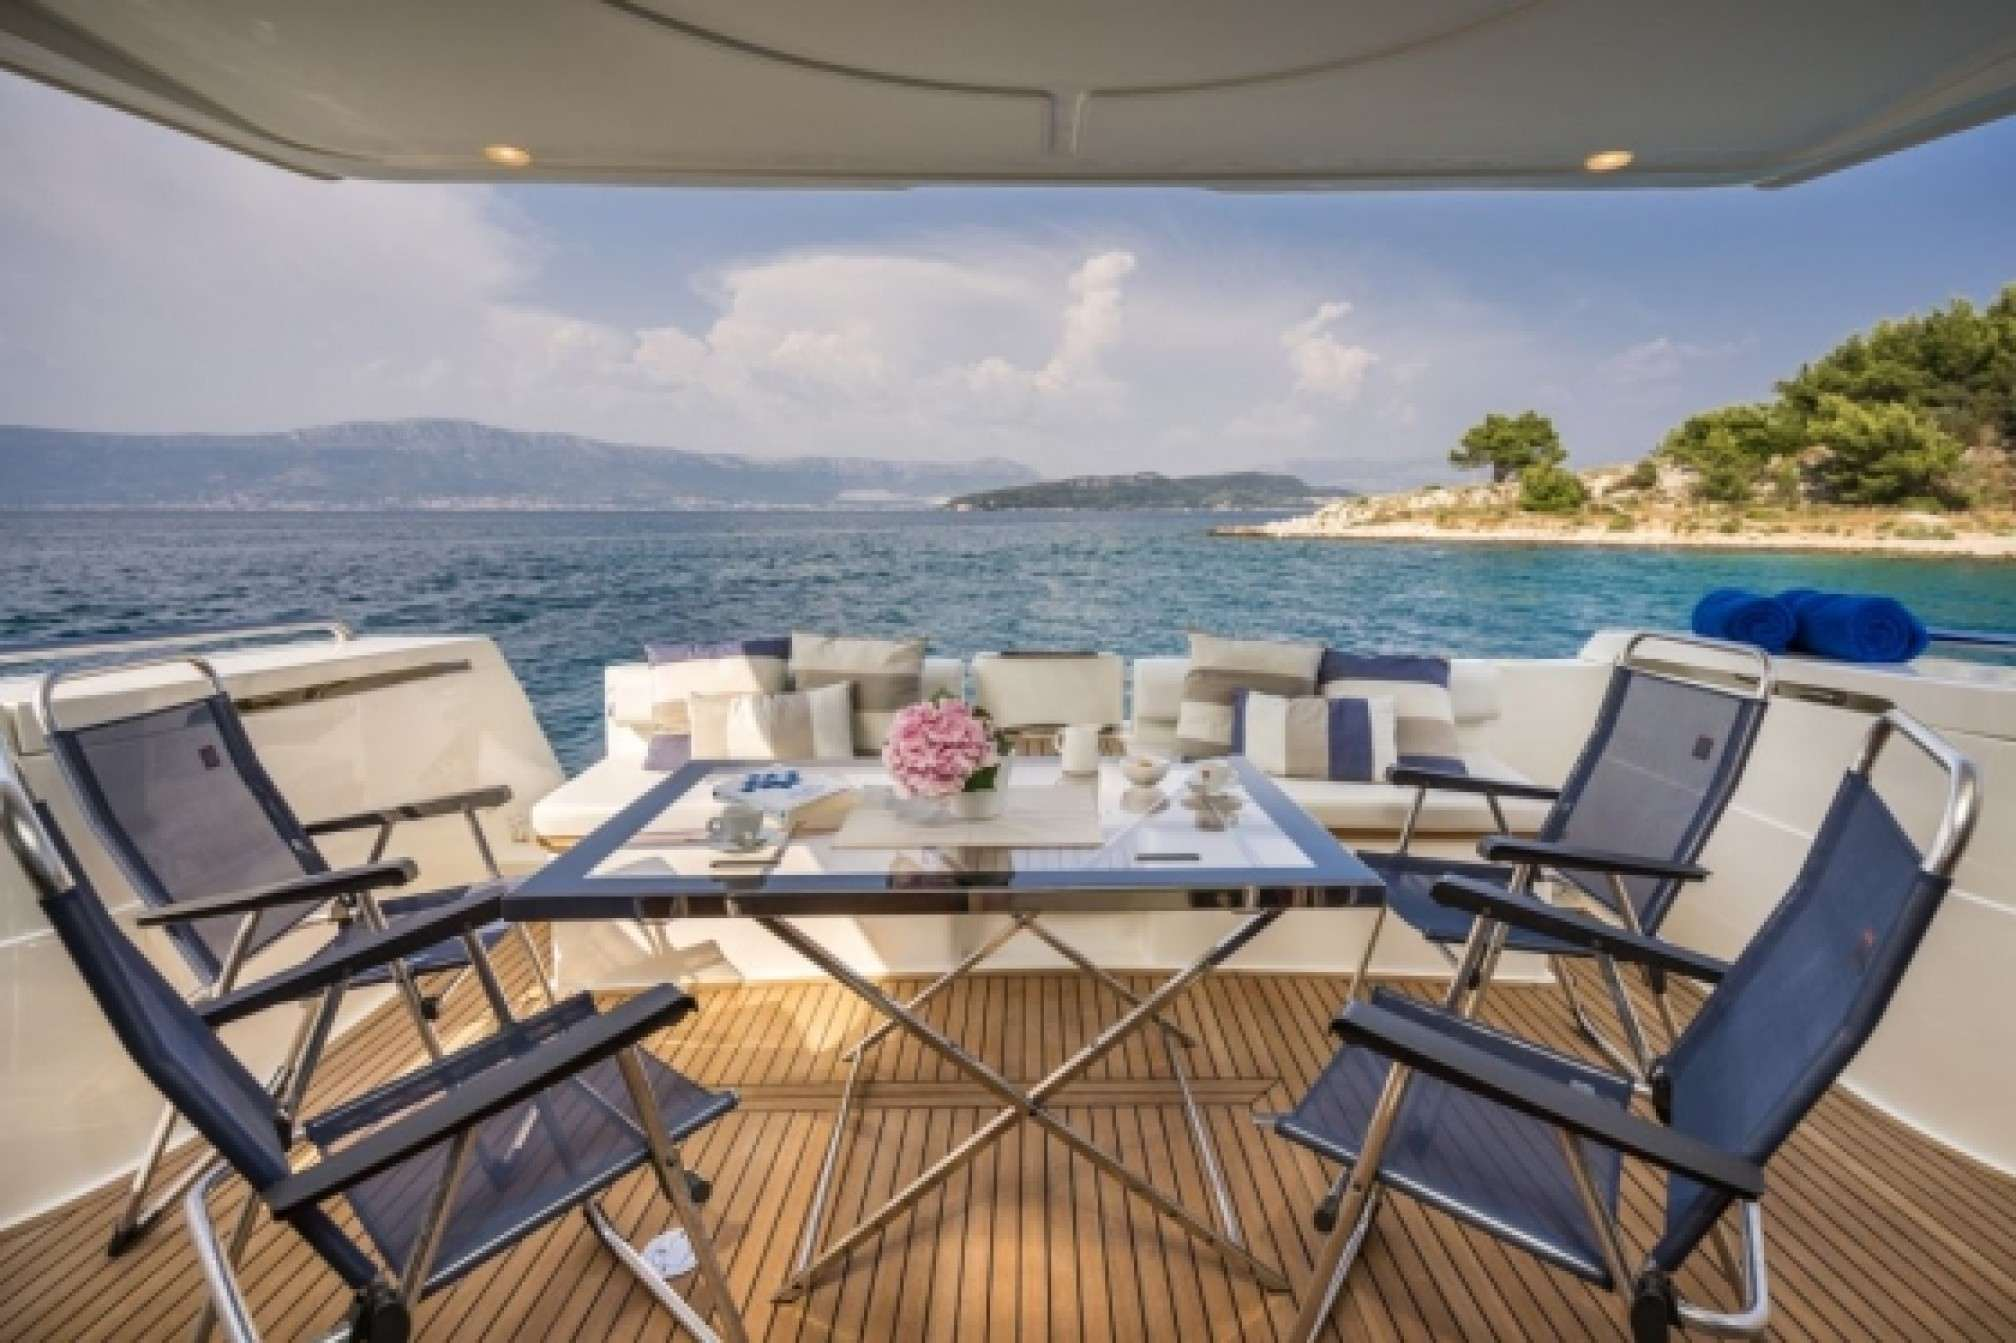 Ferretti 530 charter yacht outdoors